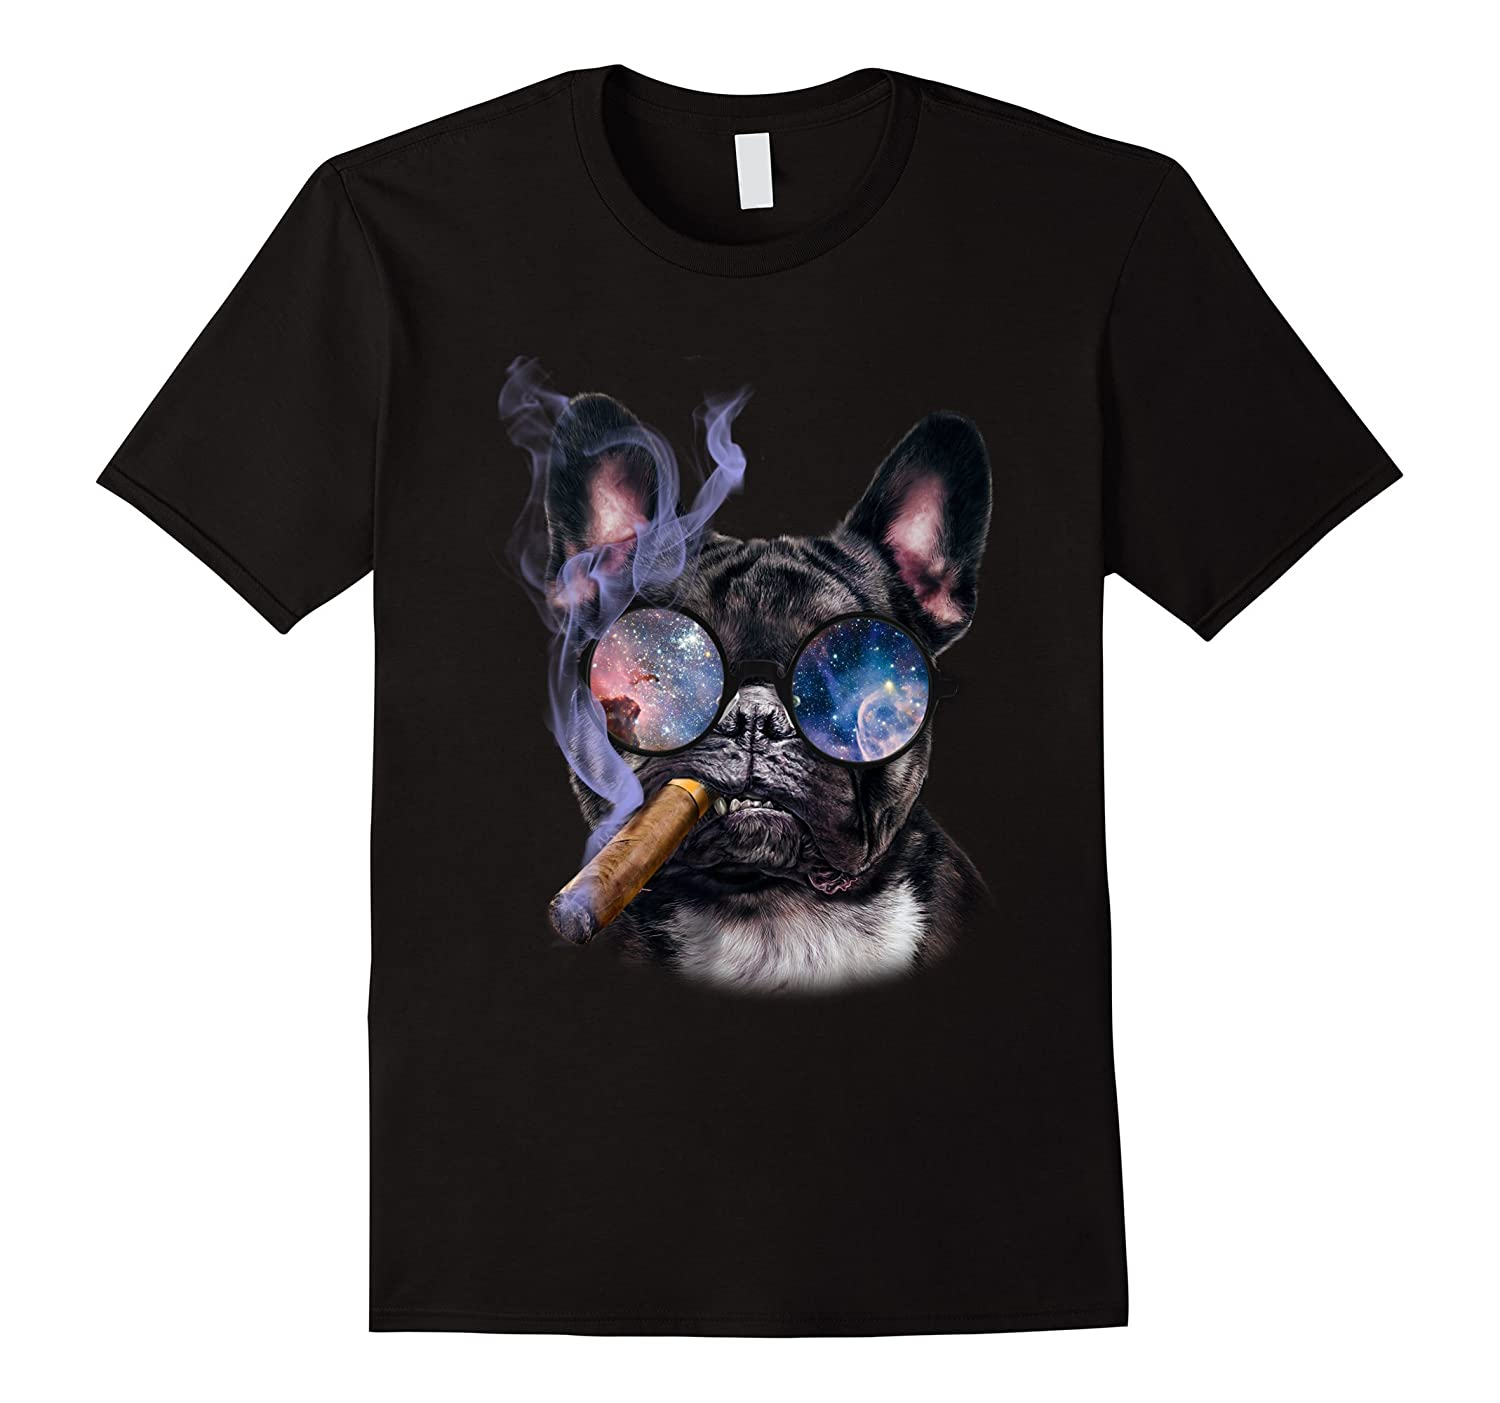 T-Shirt, French Bull Dog Biting Cigar, Retro Galaxy Eyeglass-TH